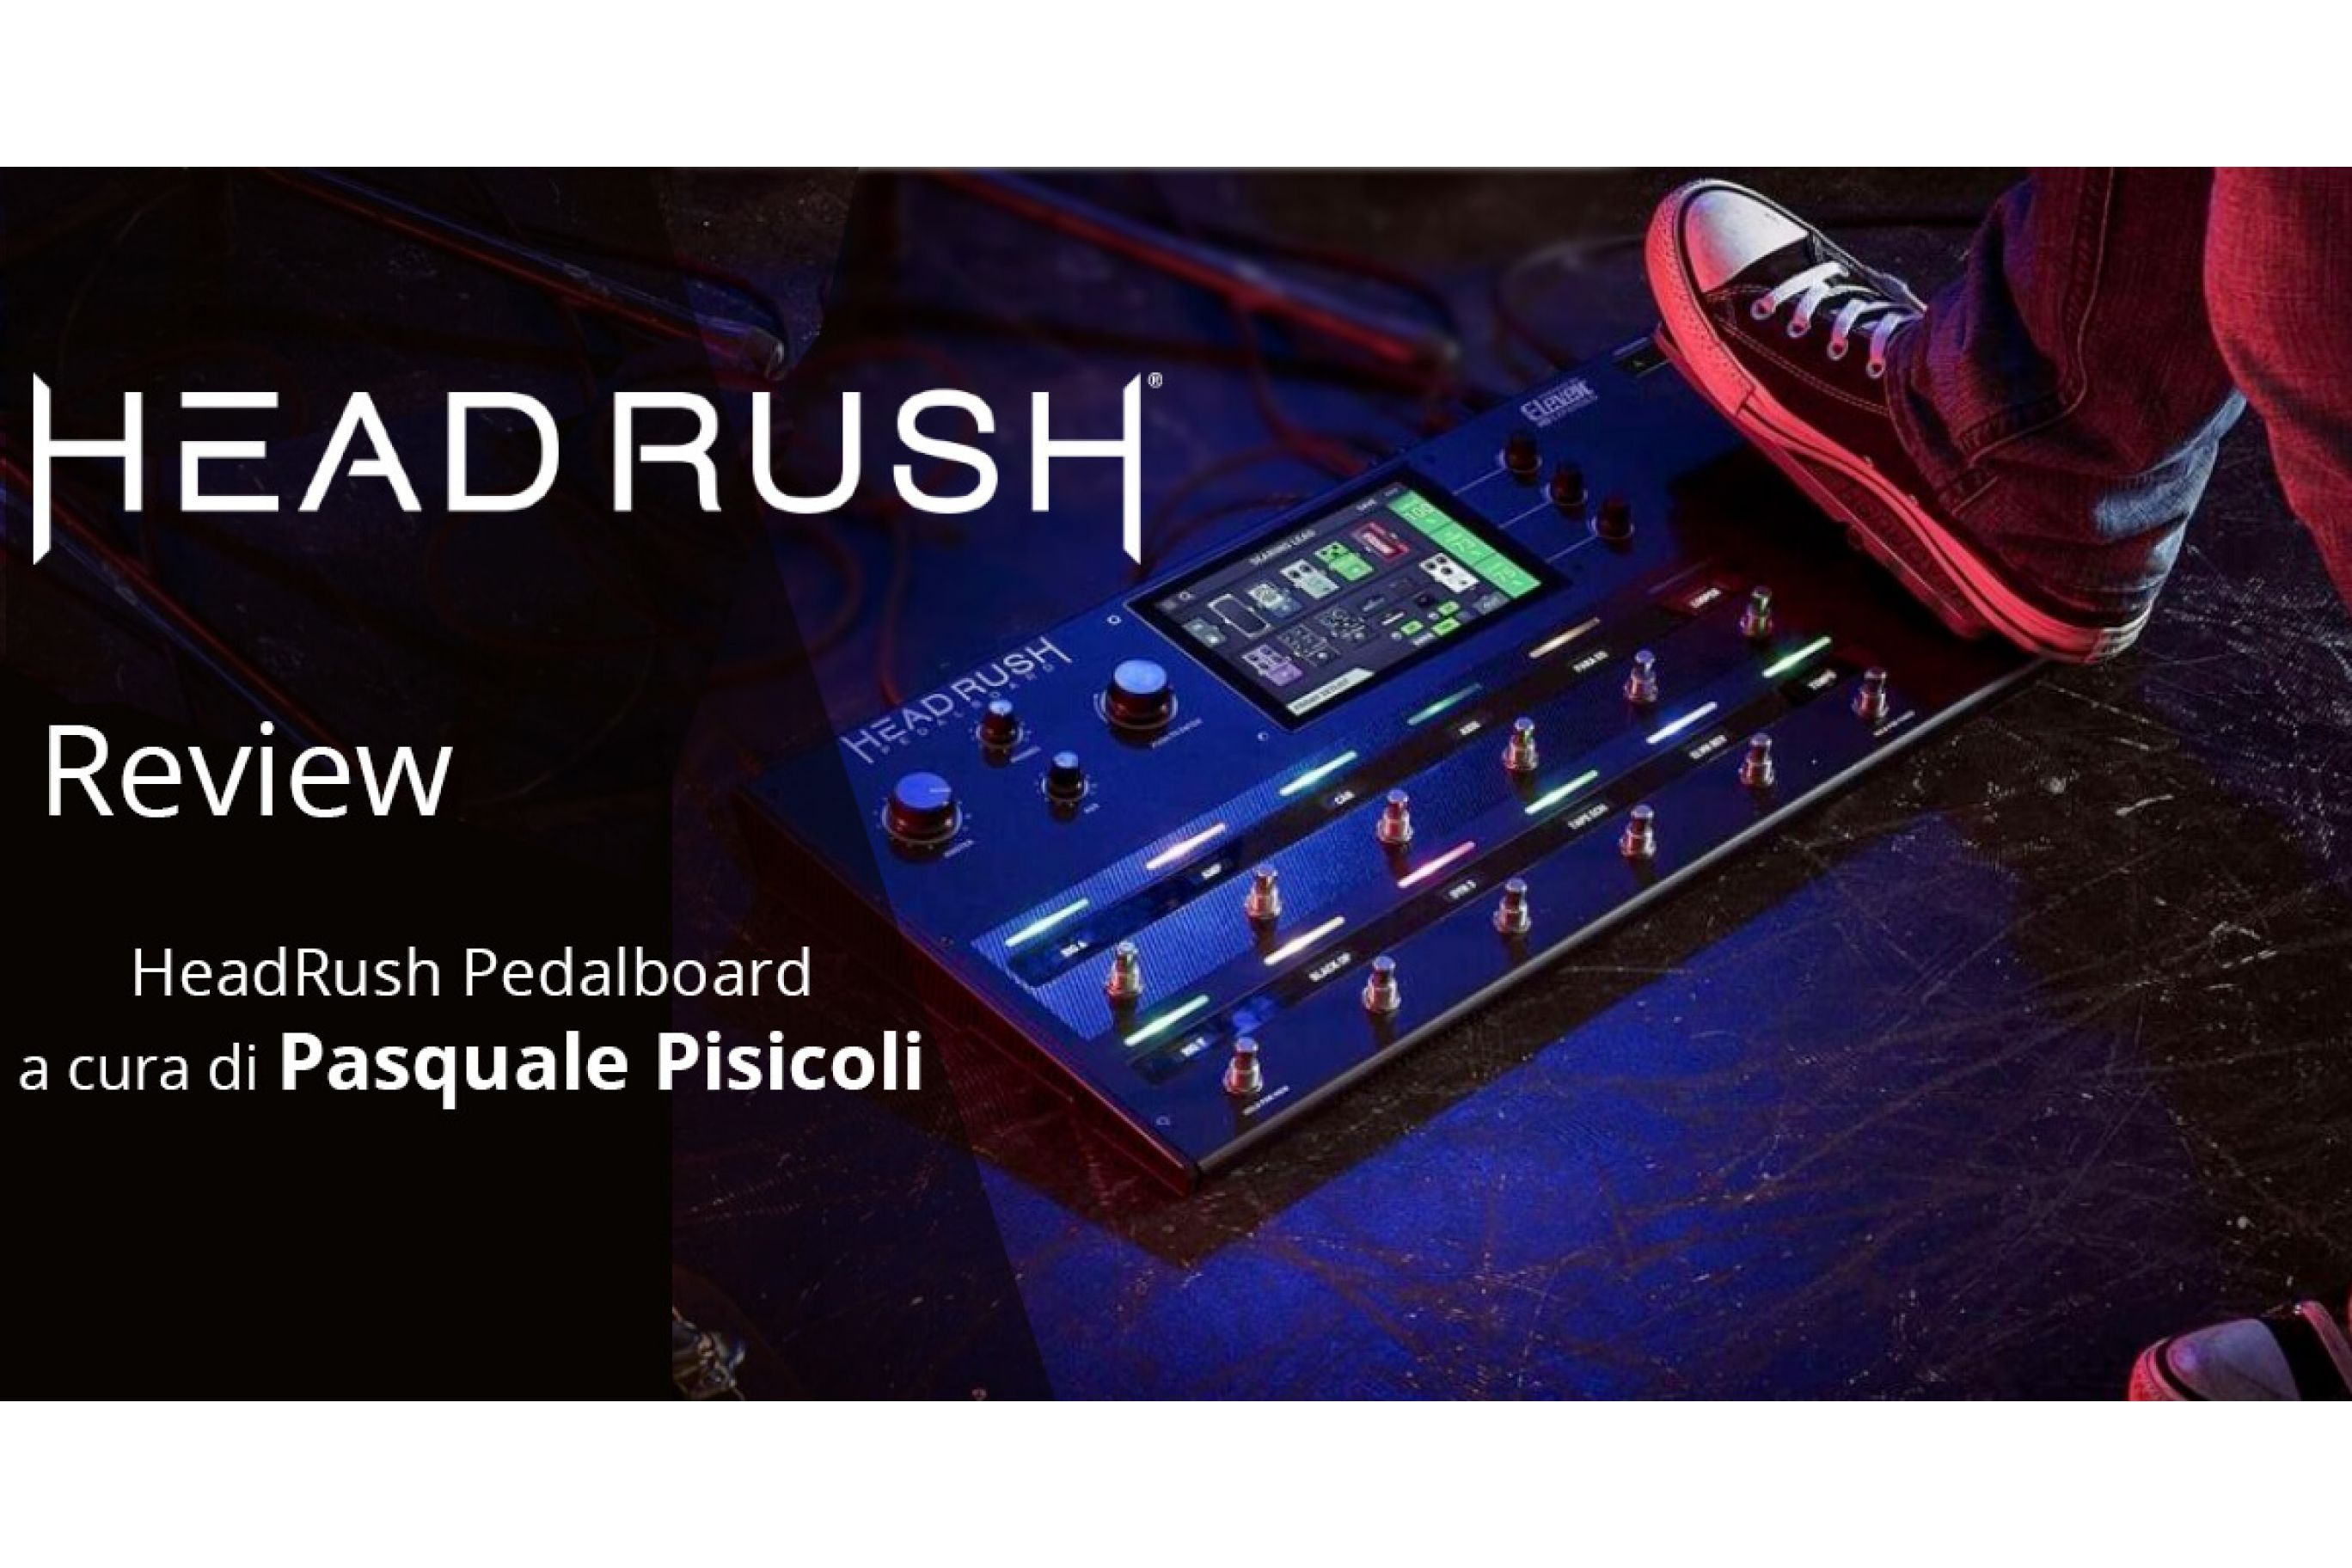 HeadRush Pedalboard - Review @MusicalStore2005